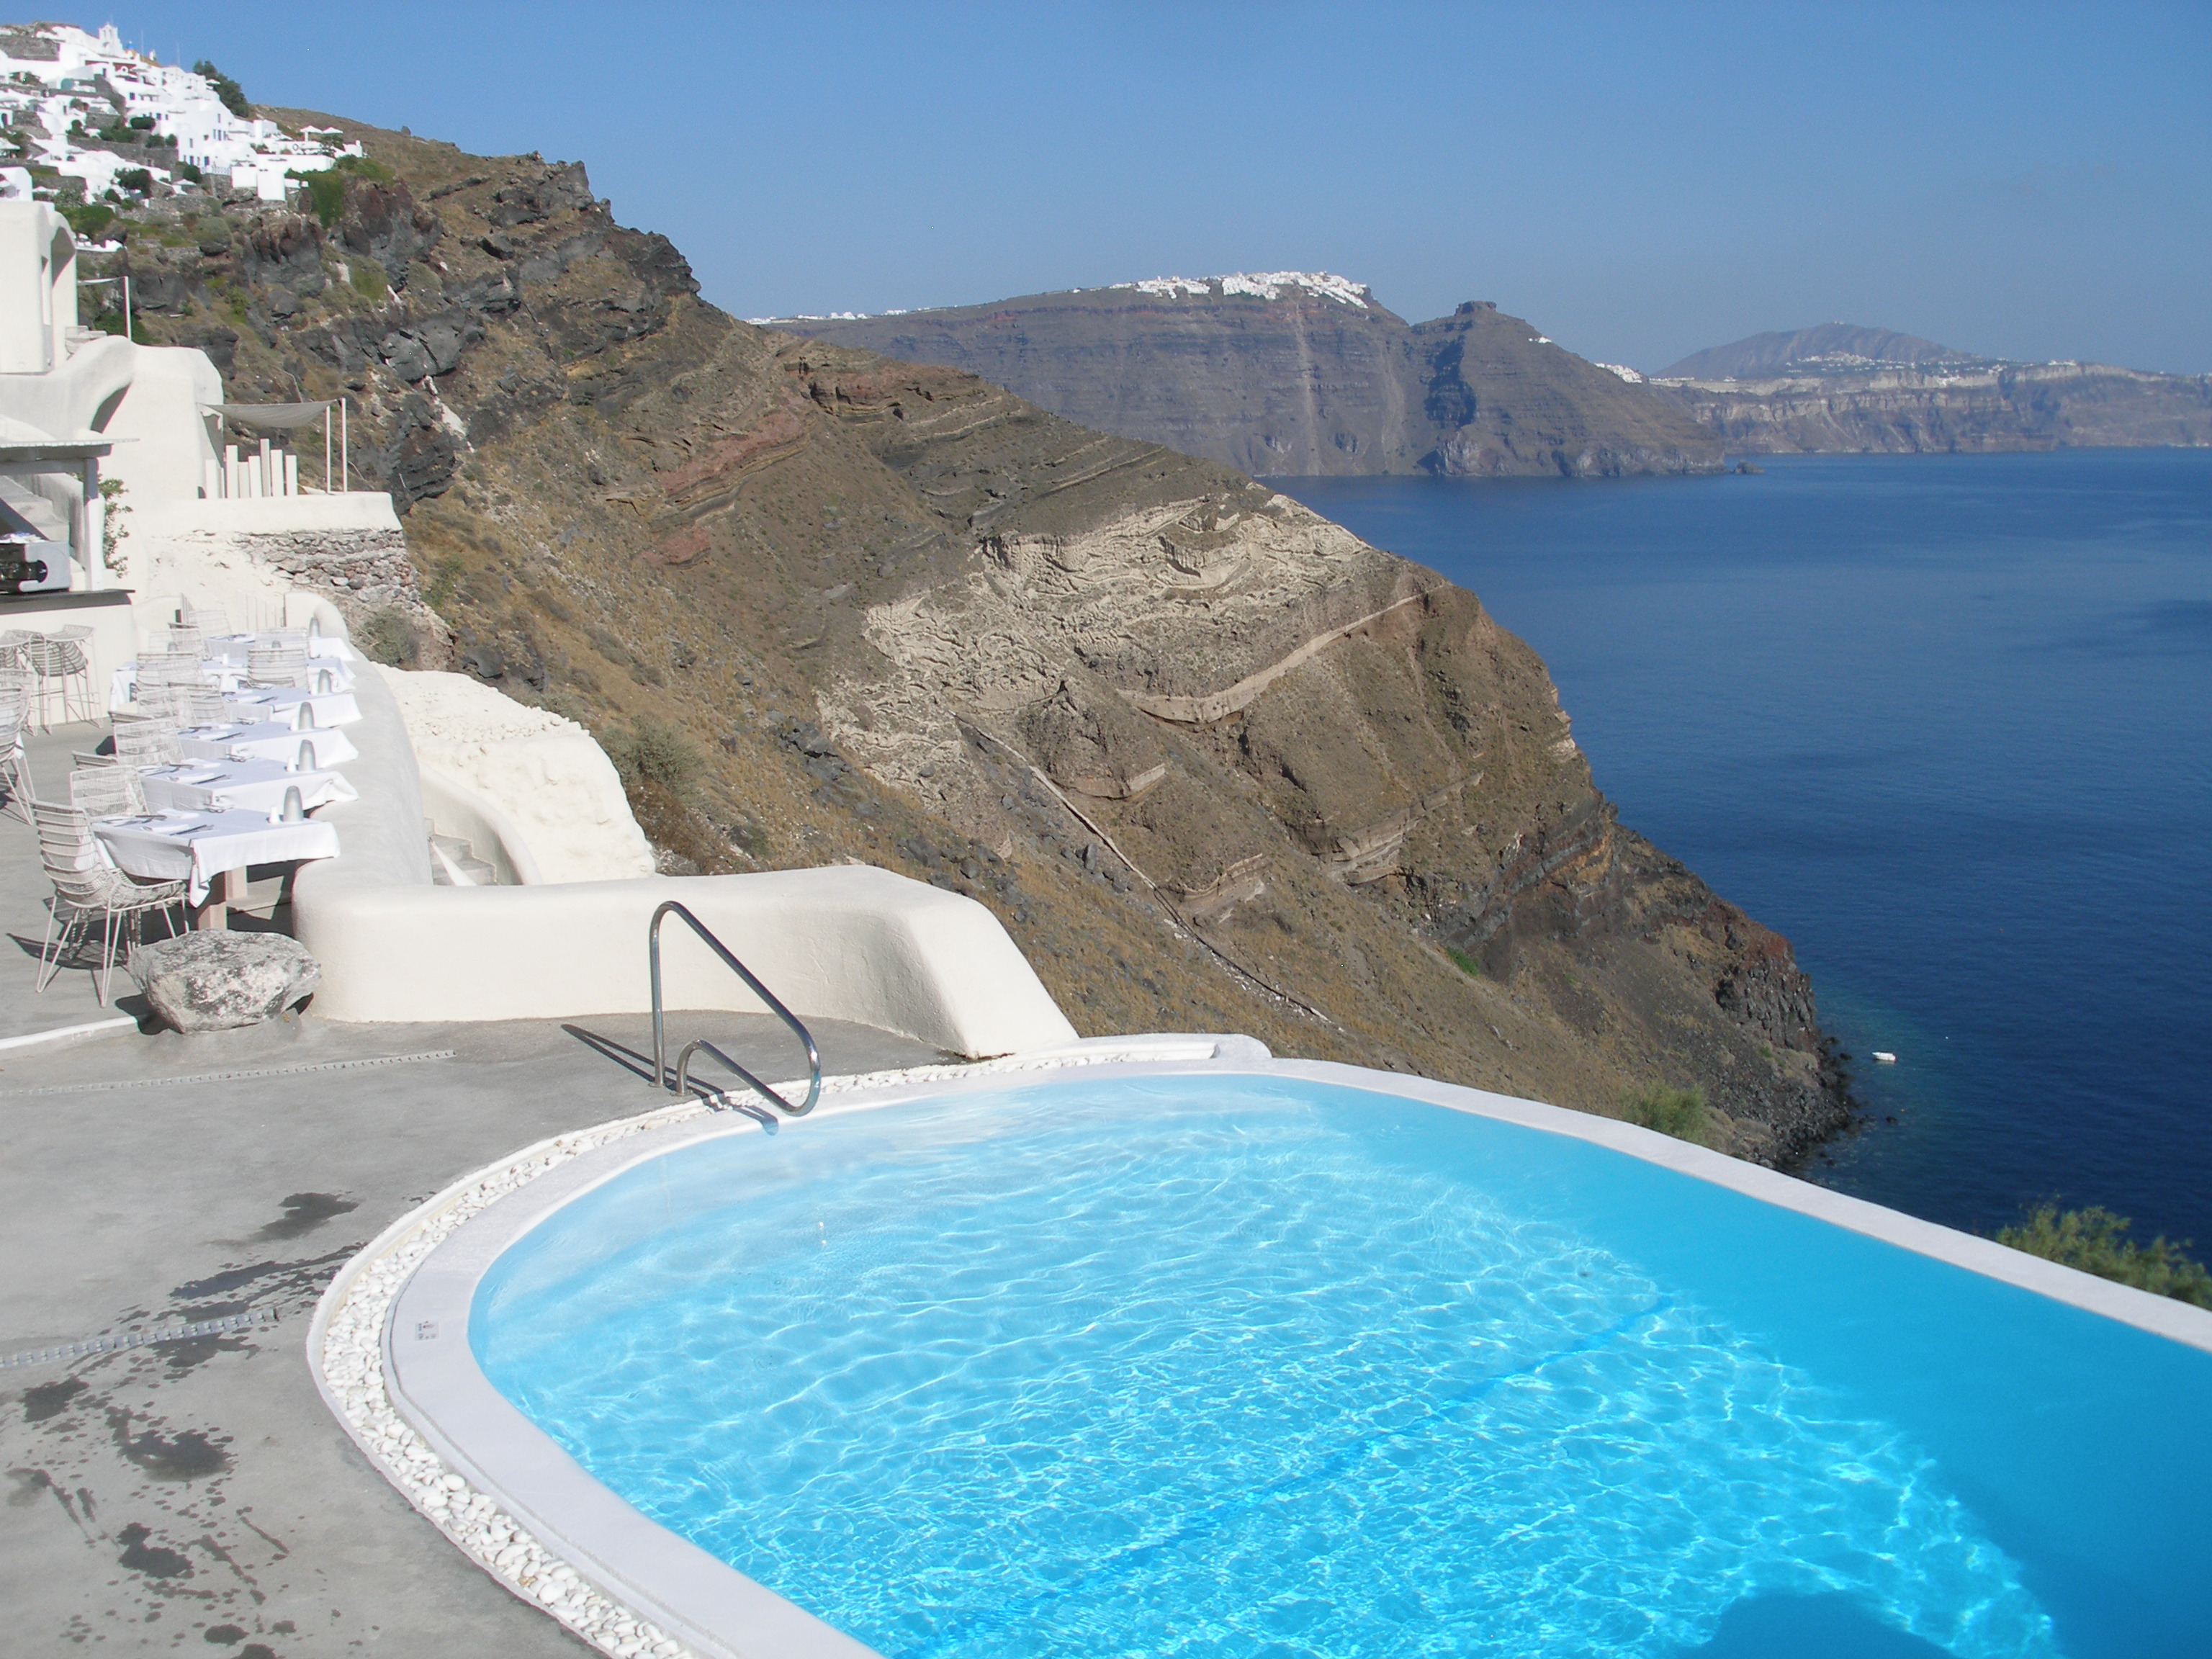 Hotel review mystique santorini greece the luxury travel expert - Infinity pool europe ...